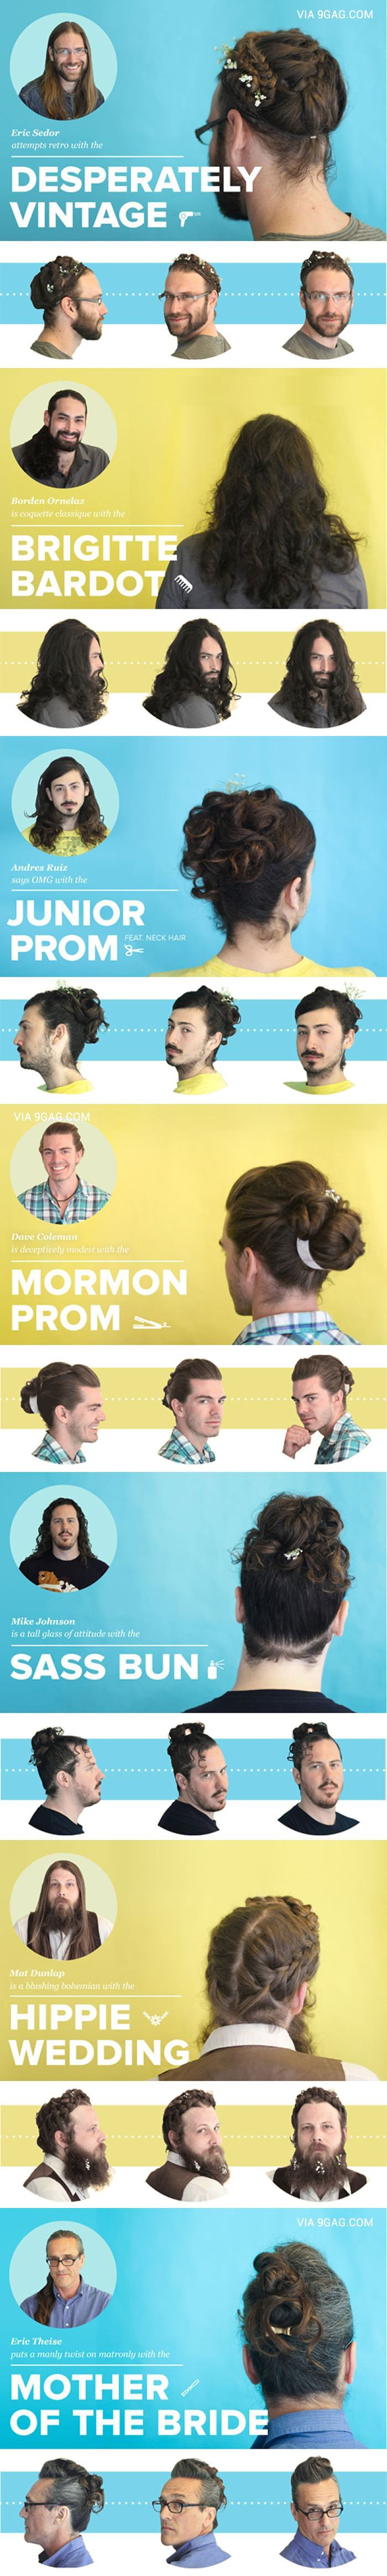 Guys With Fancy Lady Hair - This is pure gold. I'm dying